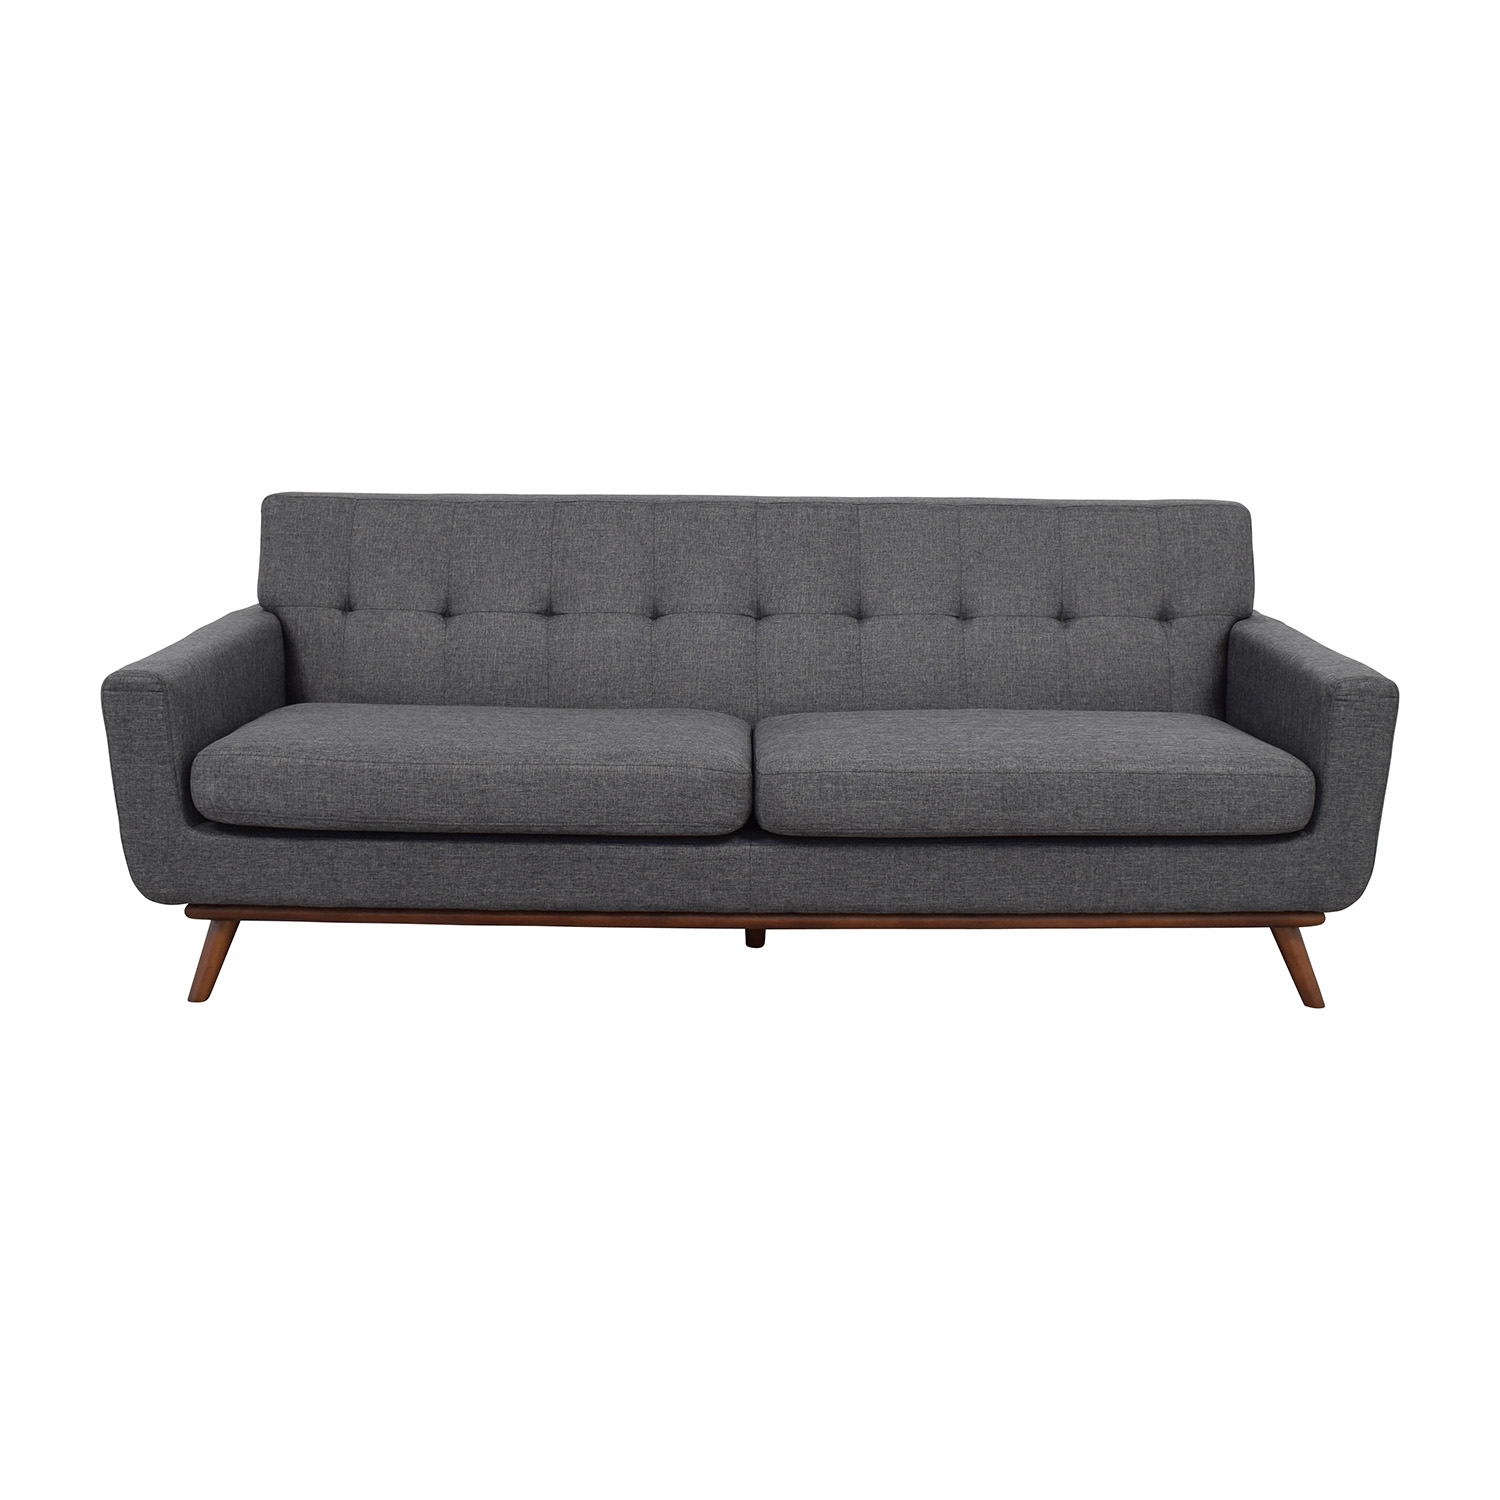 InMod Charcoal Grey Tufted Lars Sofa / Classic Sofas